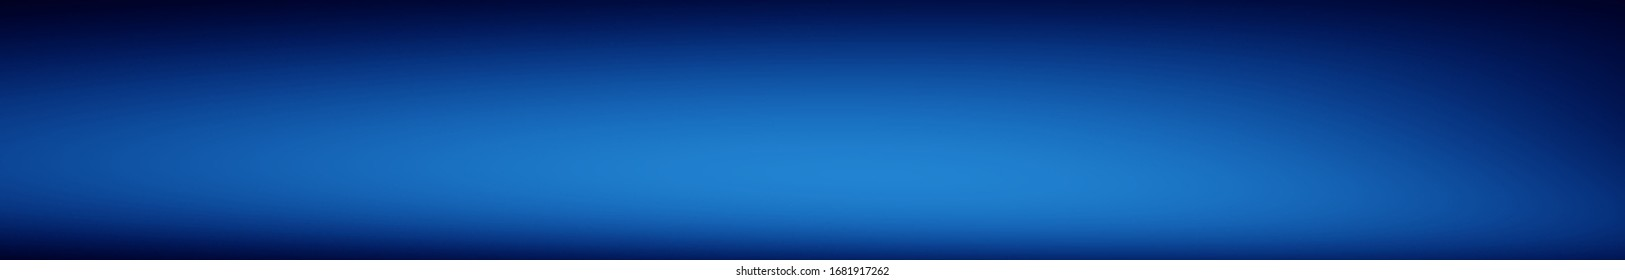 Blue technology art horizontal abstract illustration pattern